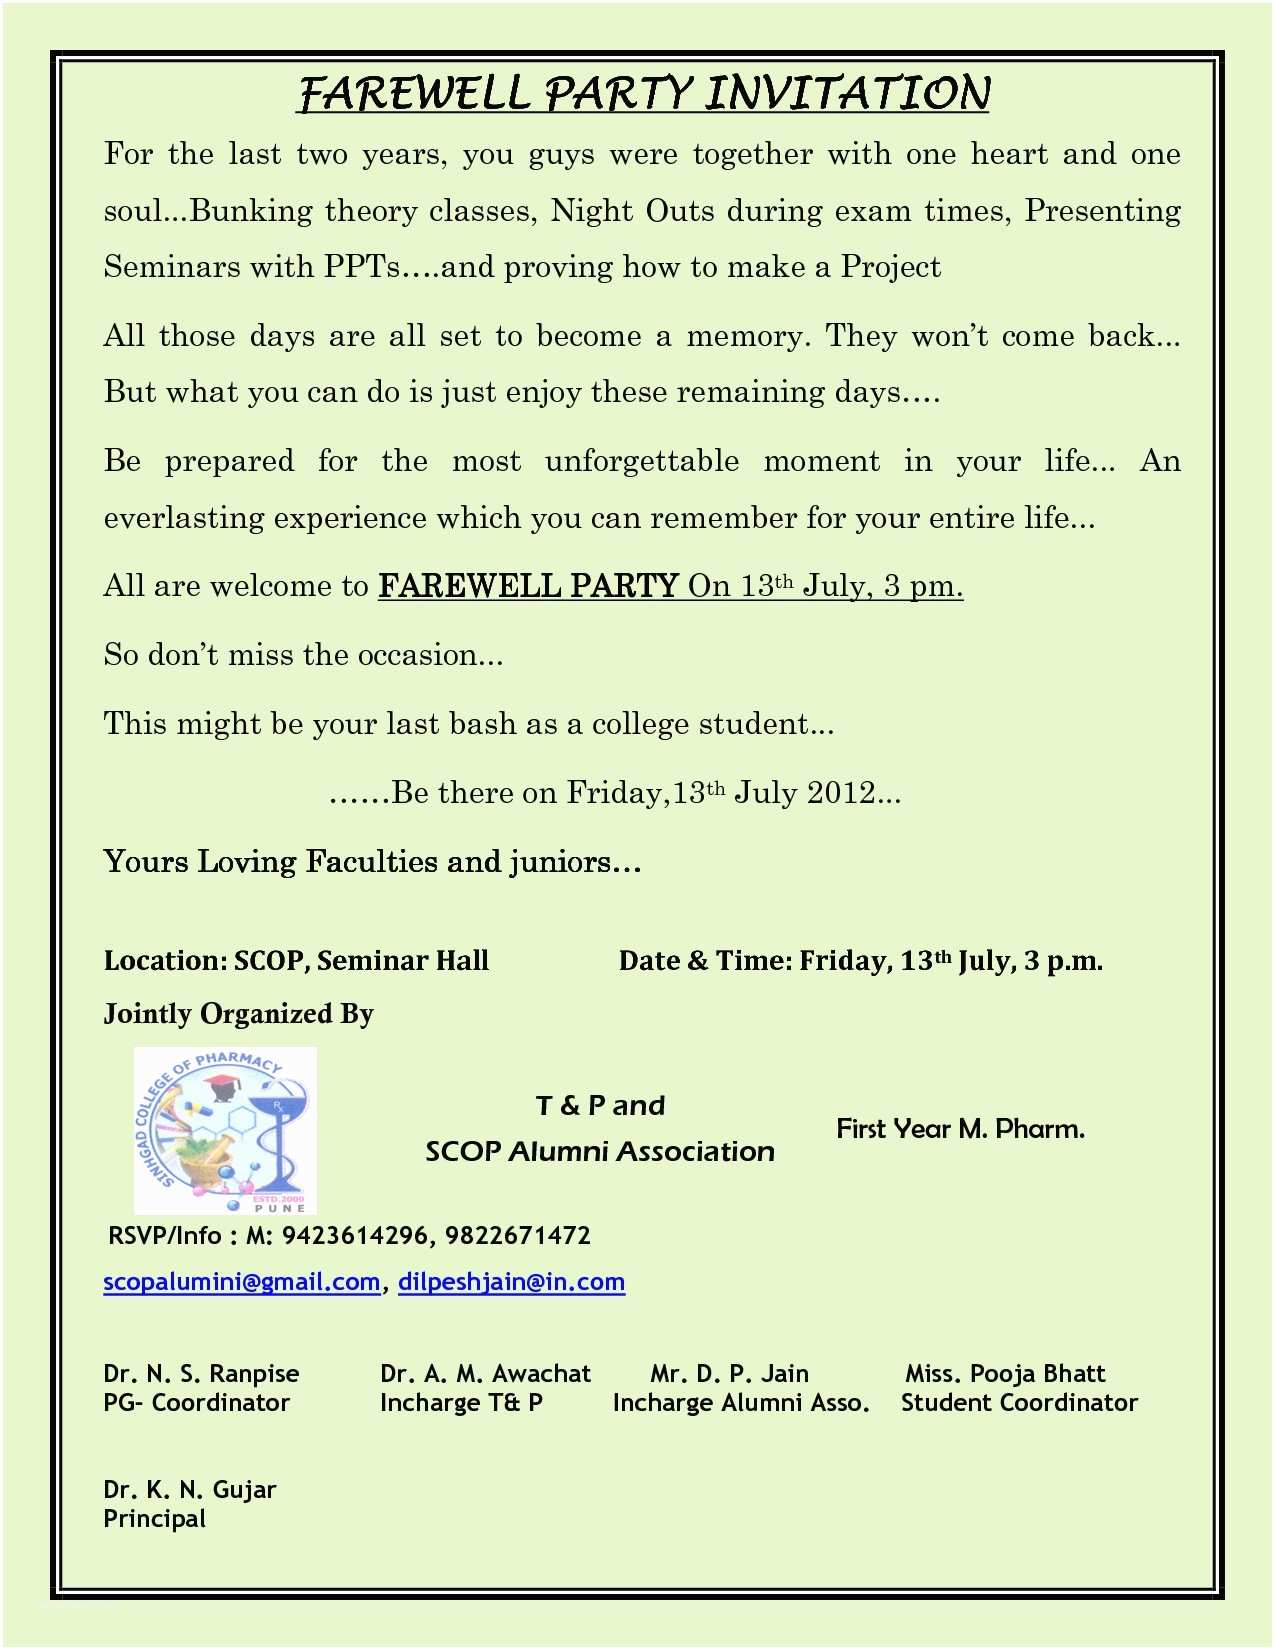 Farewell Party Invitation Wording for the Office Farewell Party Invitation Wording for the Office Jose